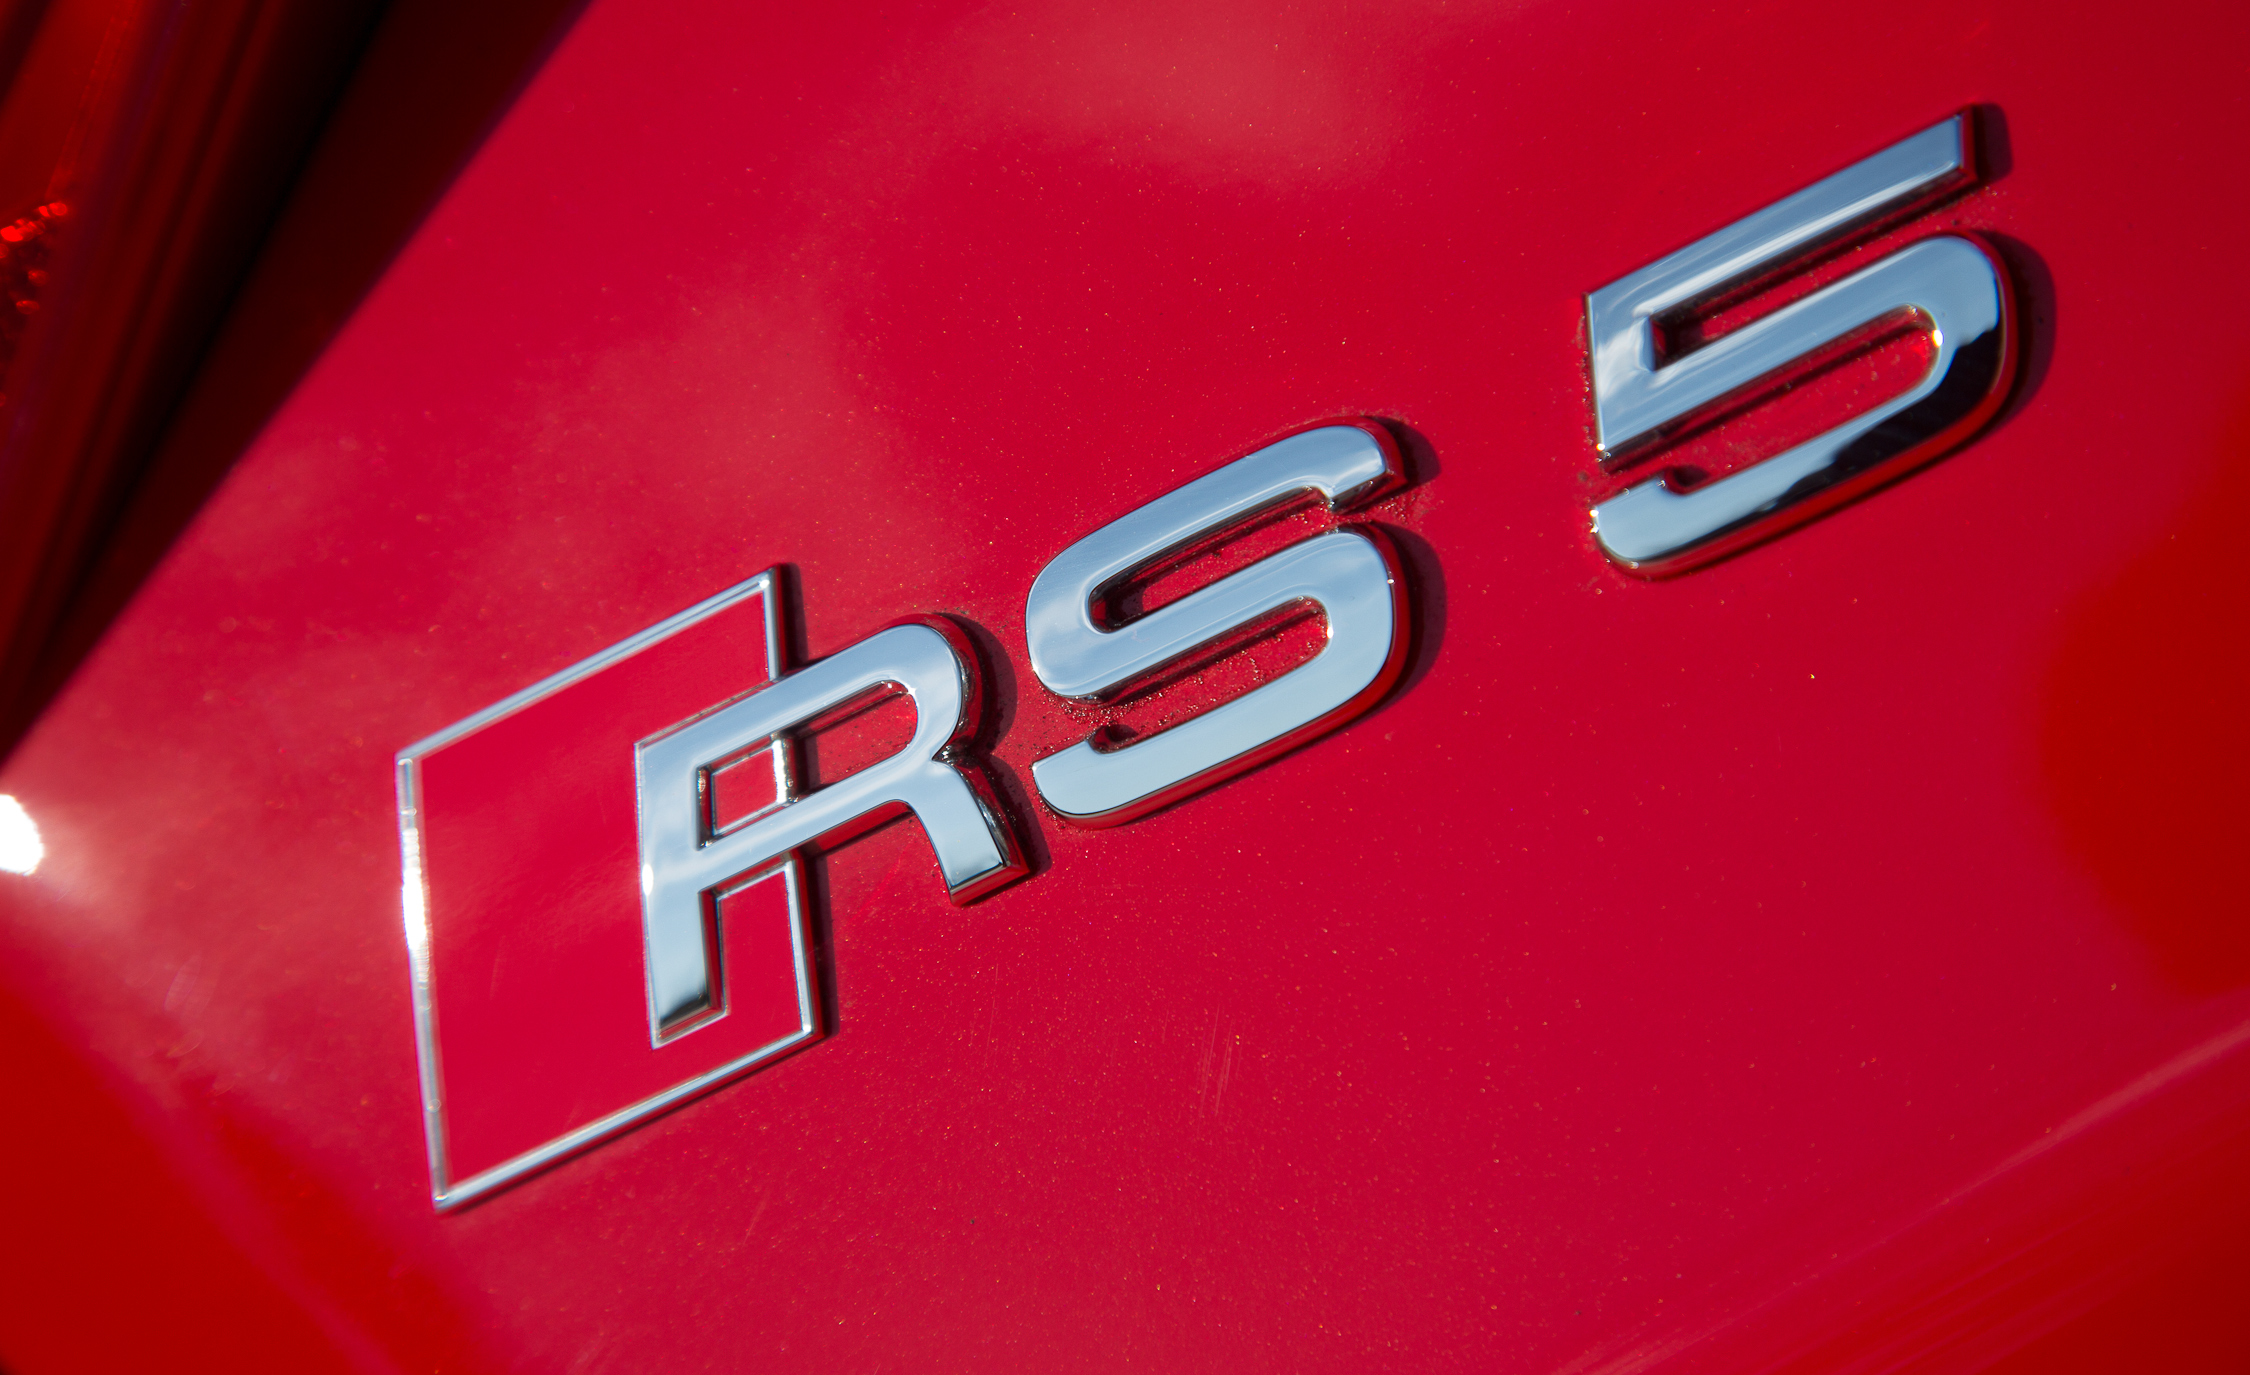 2013 Audi RS 5 Exterior View Rear Badge (Photo 14 of 41)